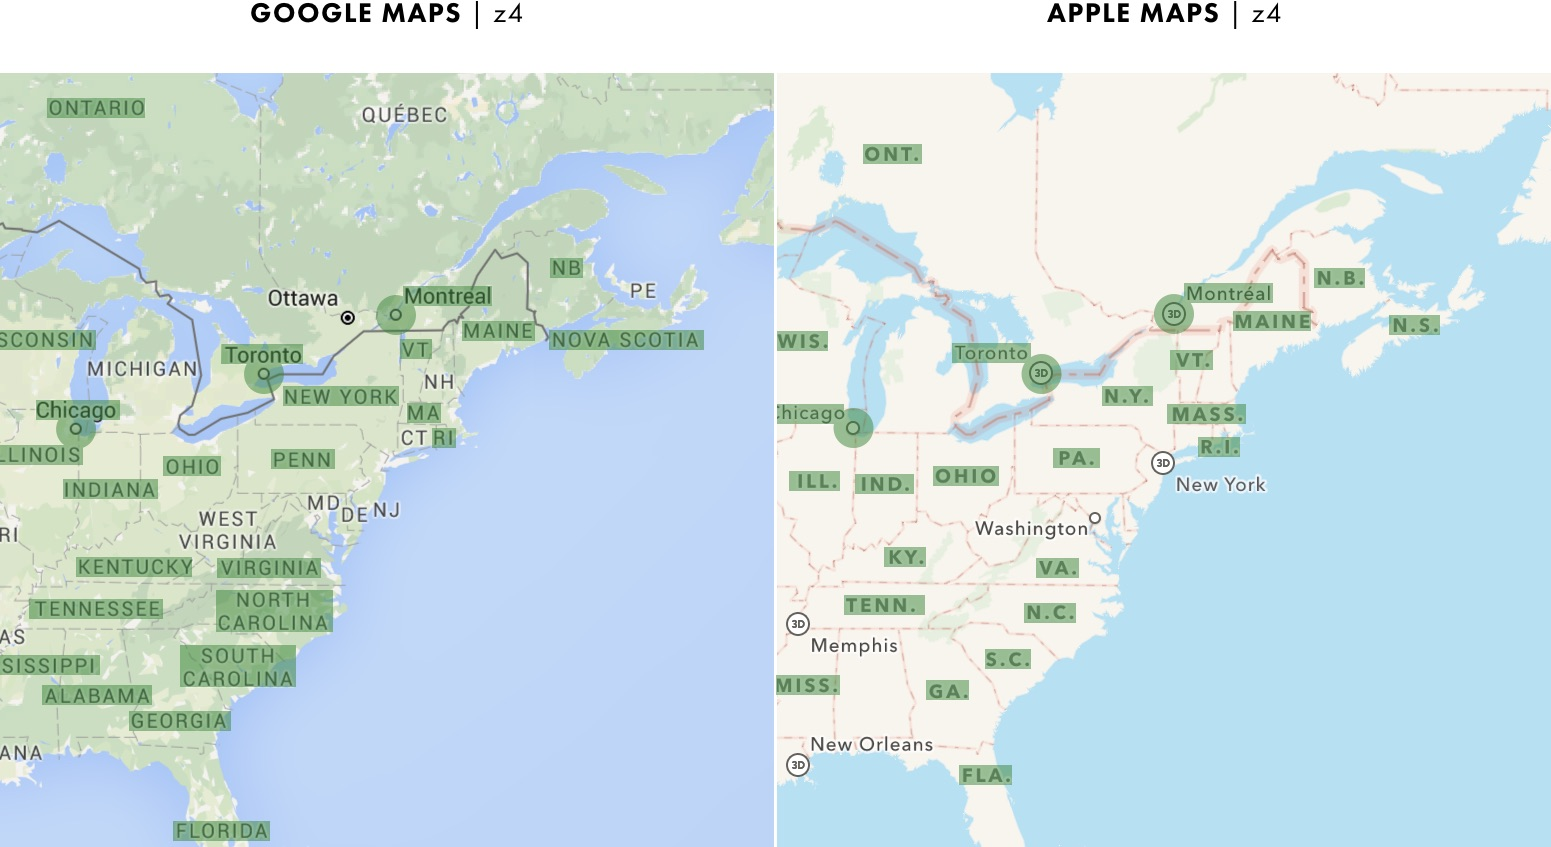 Cartography Comparison, Part 2